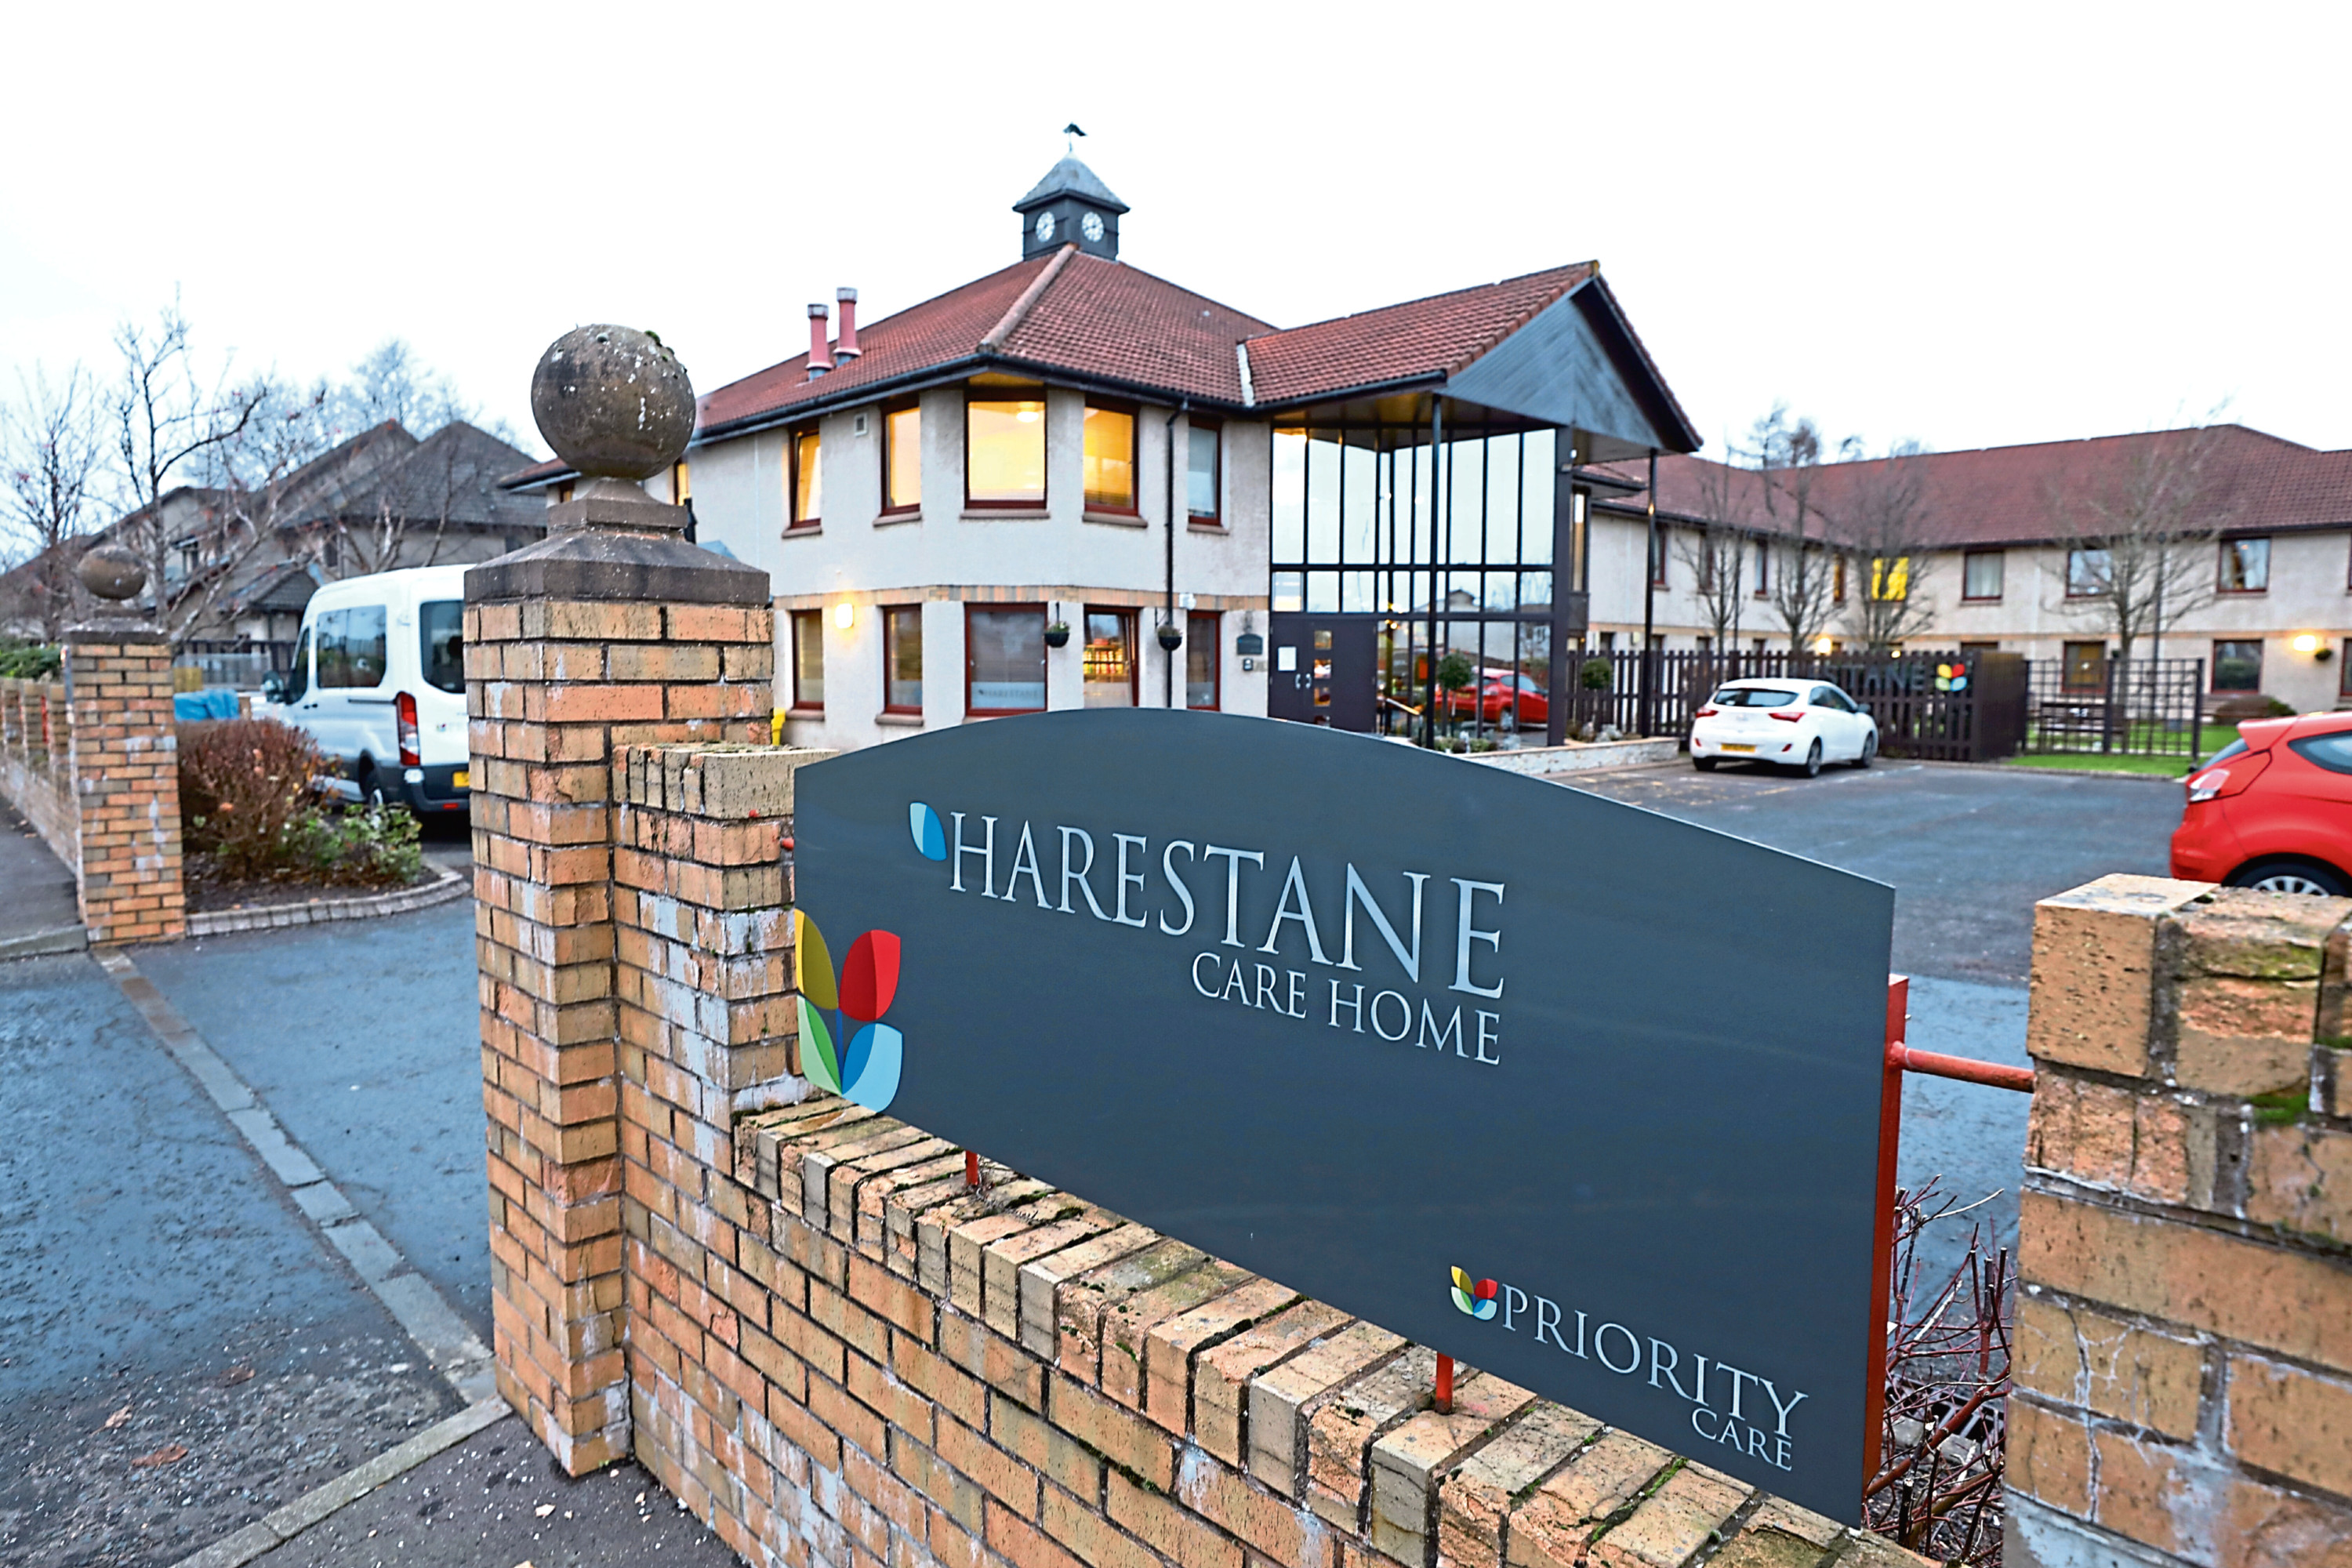 The incidents took place at Harestane Care Home